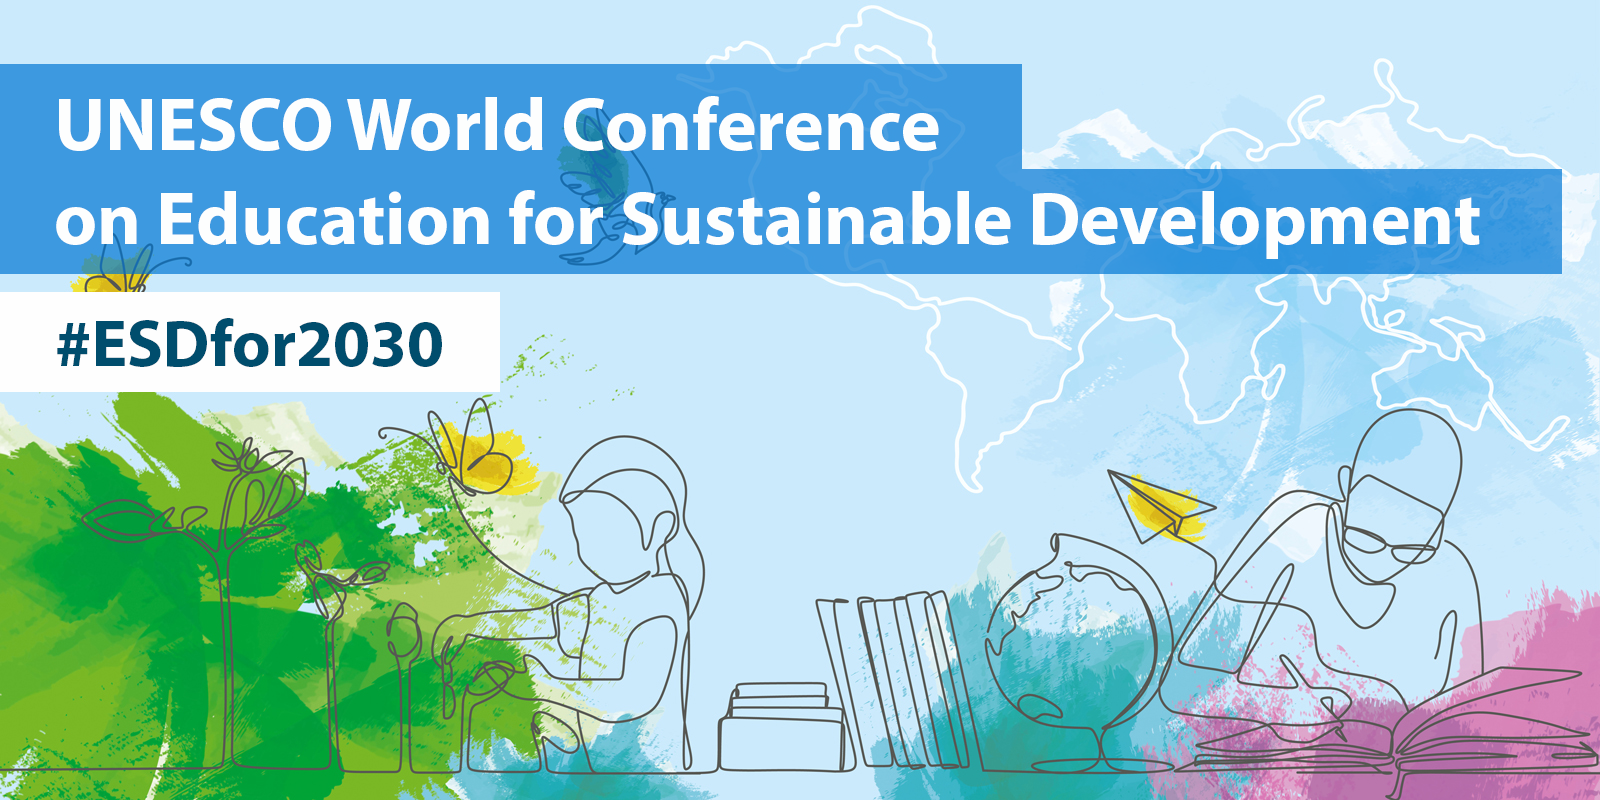 World Conference on Education for Sustainable Development